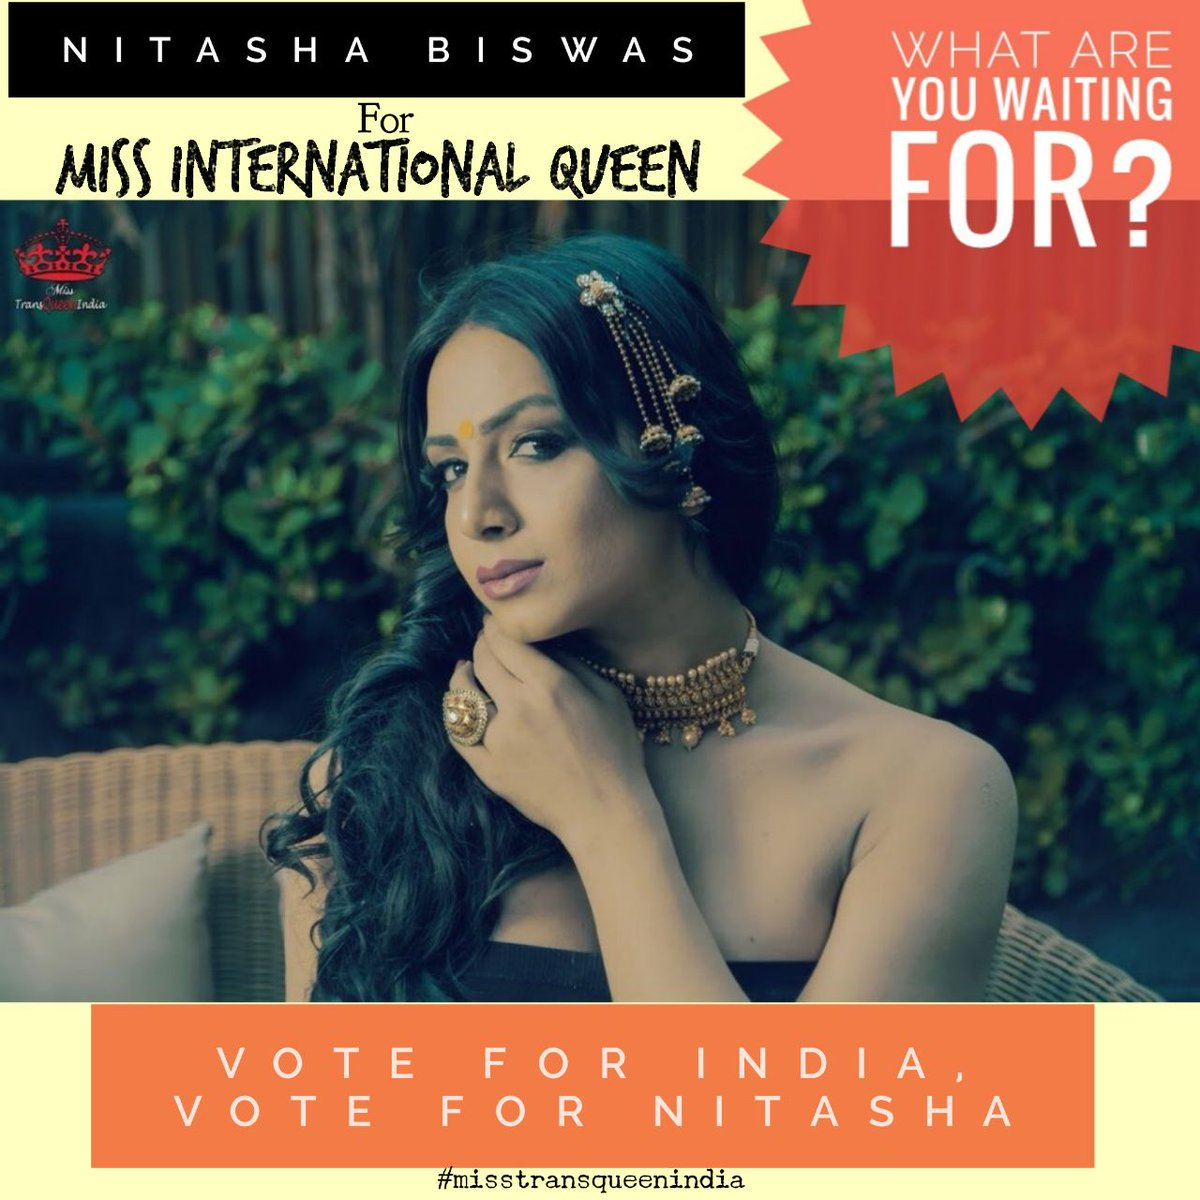 Nitasha, India's first Transqueen is all set to start her Miss International Queen 2018 journey, representing India for the first time.  Like the video to vote-   #REENARAI #SUHANIDREAMCATCHERS #TRANSQUEEN #misstransqueenindia2017  #MIssInternationalQueen